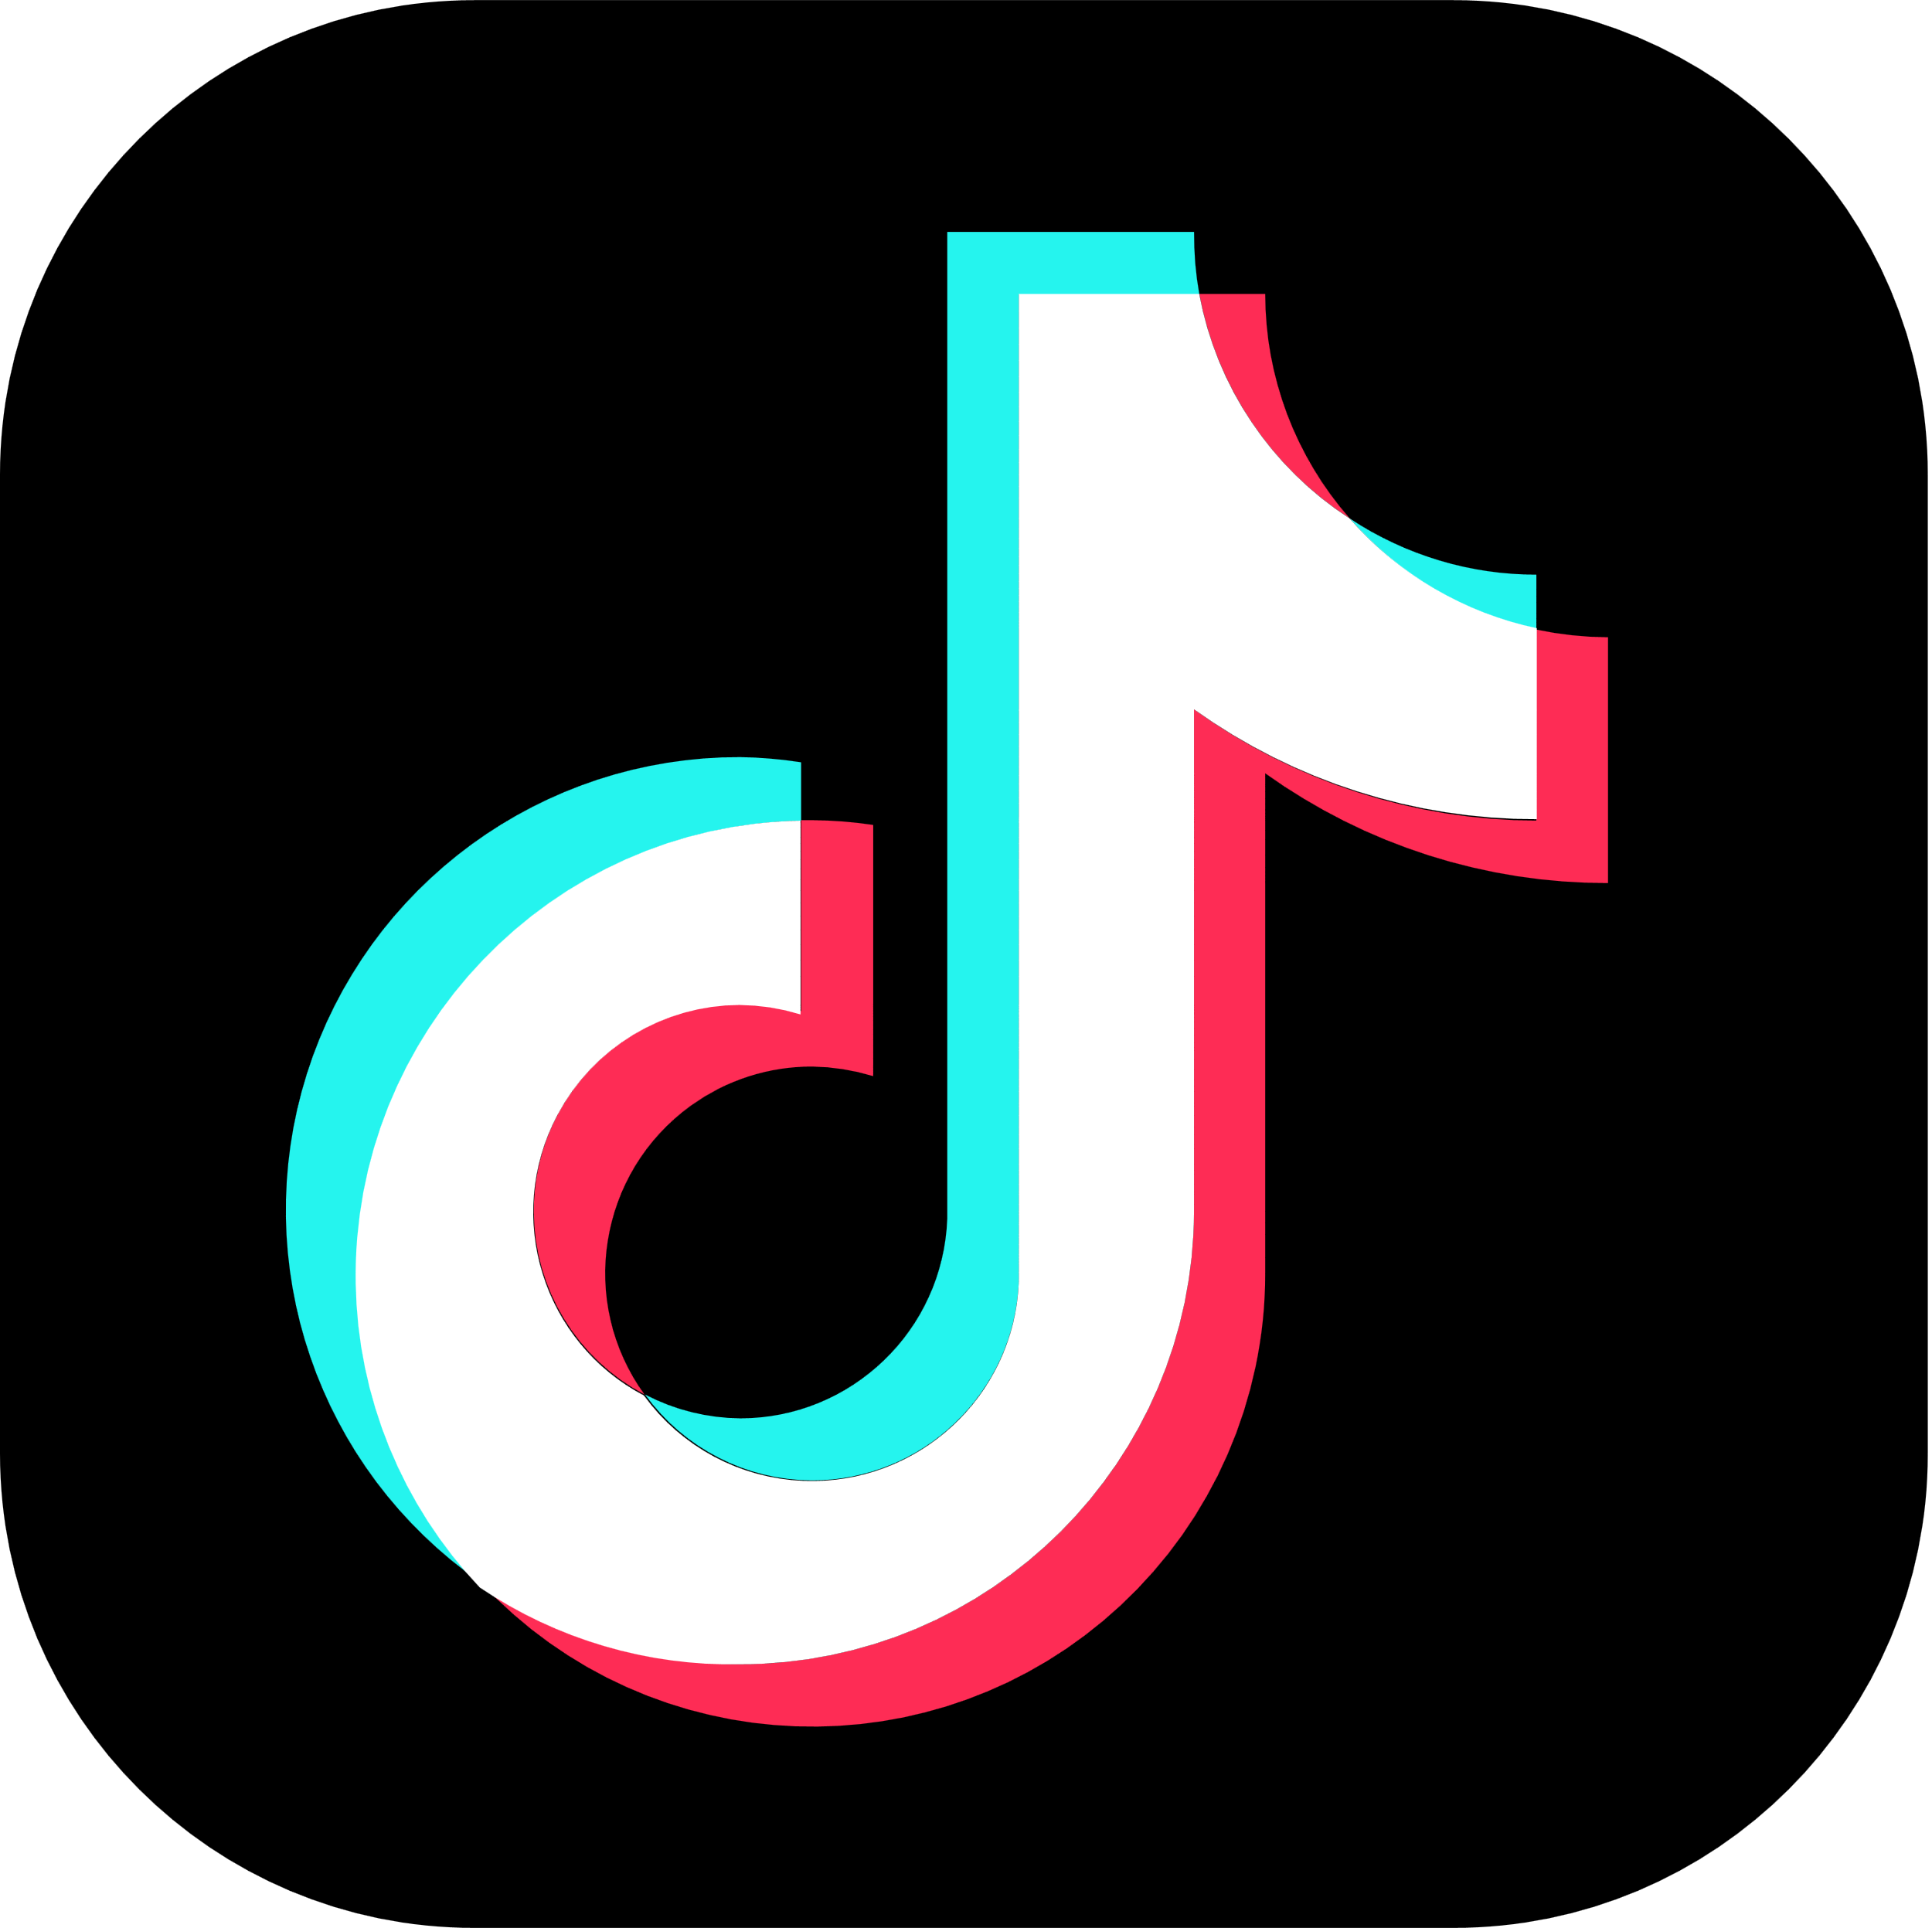 TikTok marketing informatie